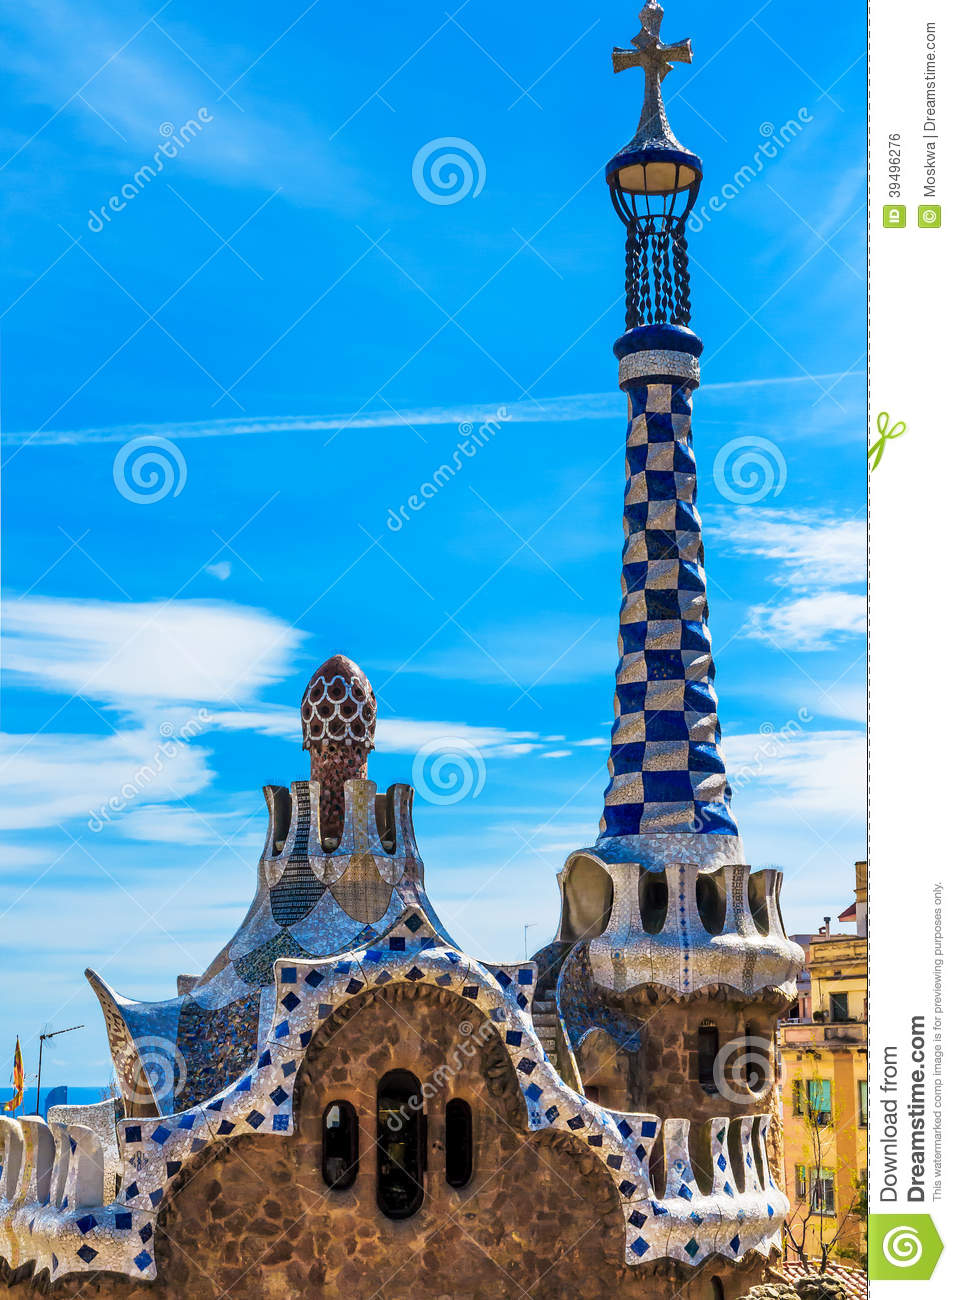 Colorful Mosaic Building In Park Guell Barcelona, Spain Stock Photo ...